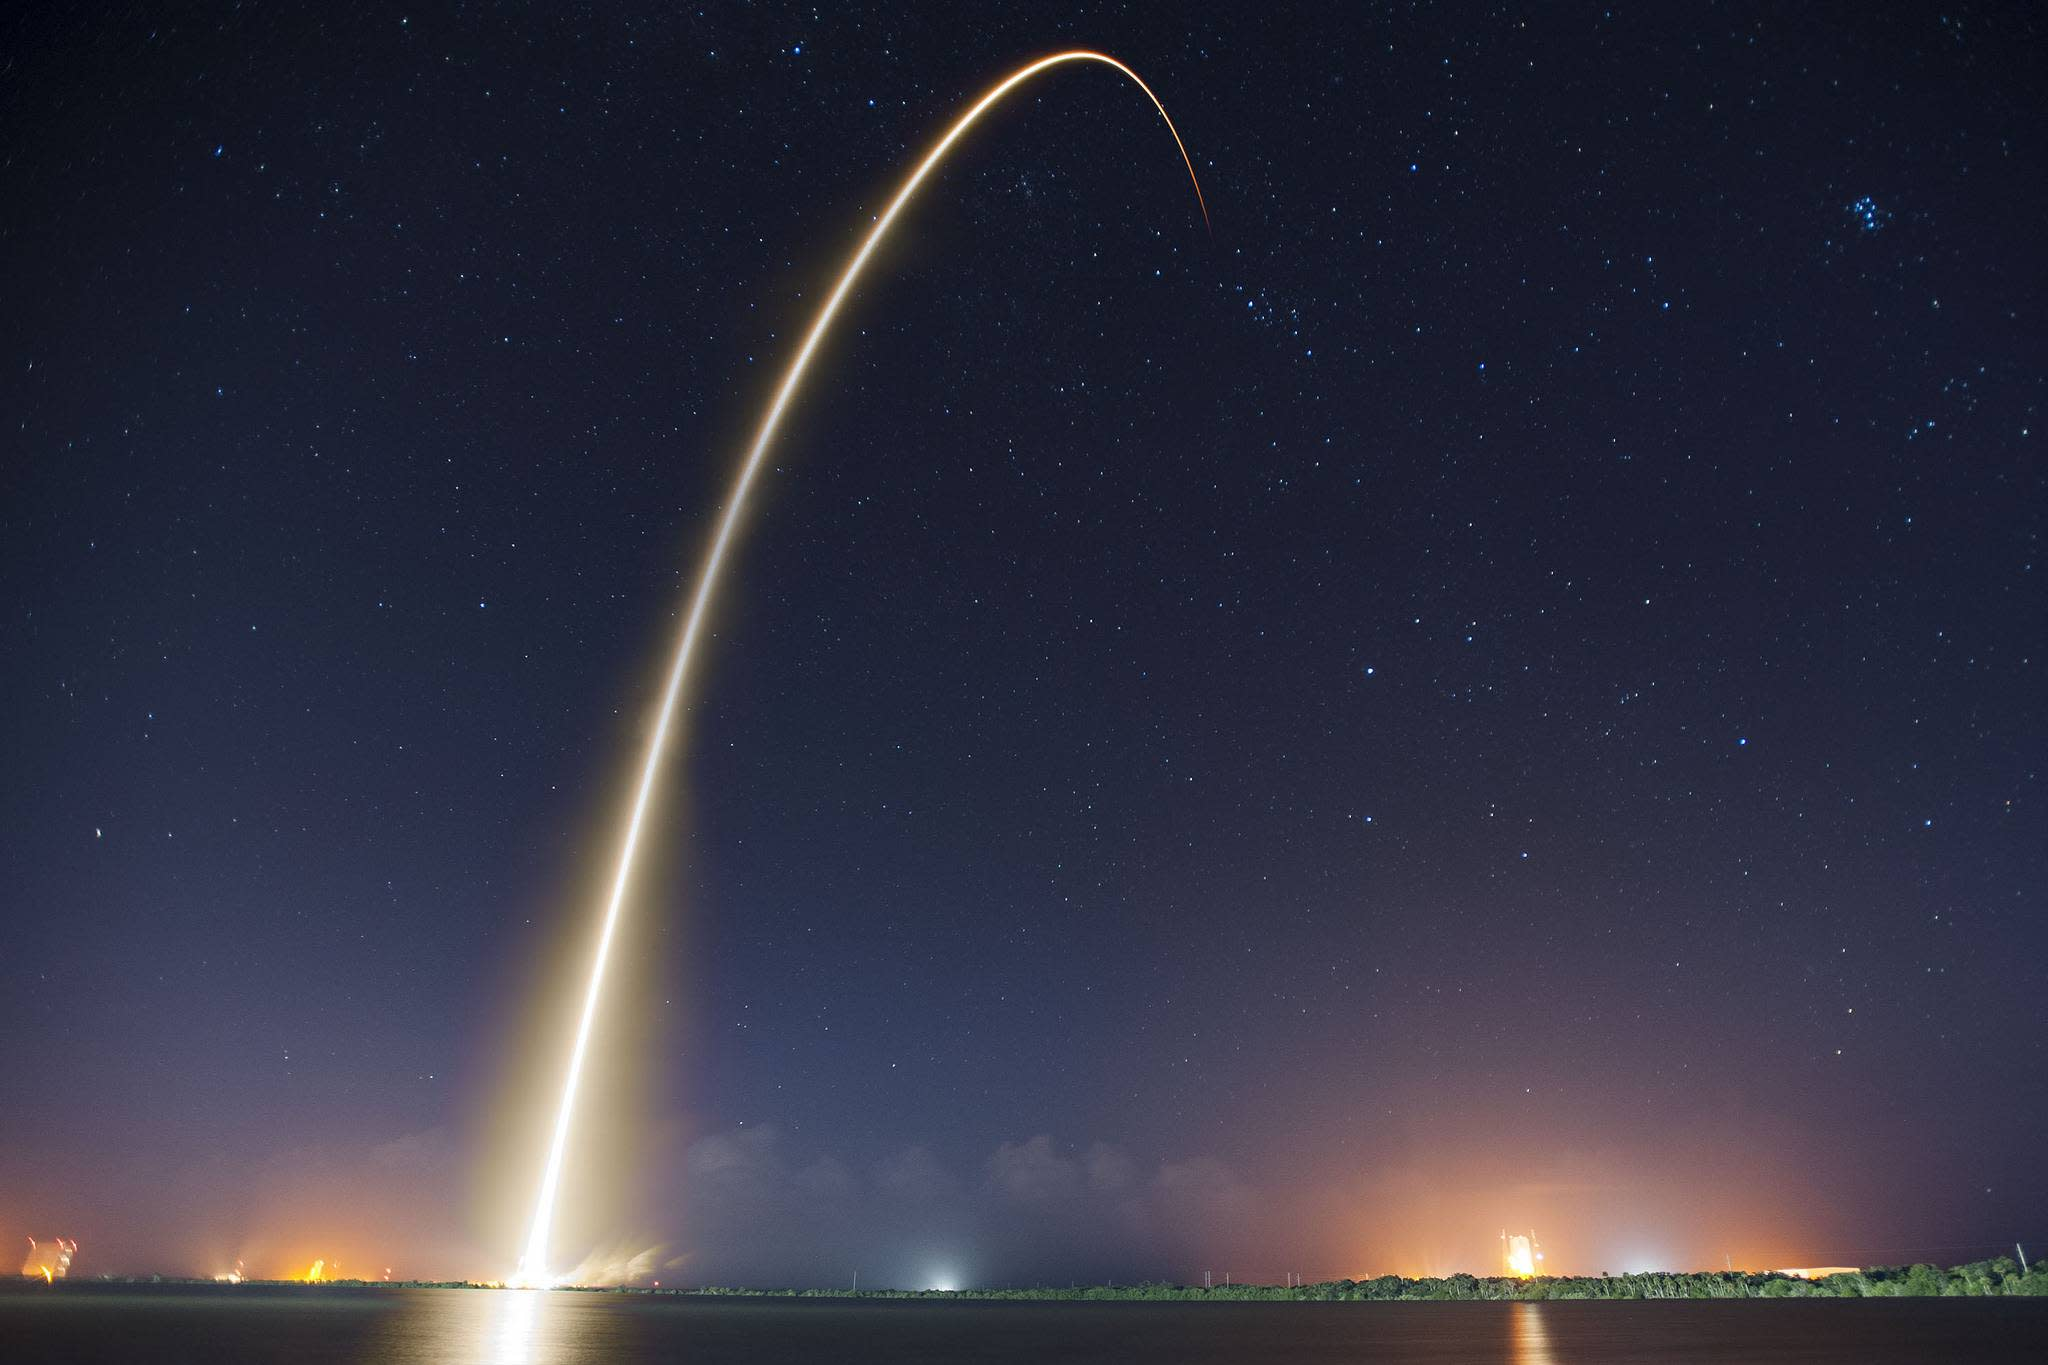 SpaceX Falcon 9 Rockets Prone To Cracks According To Government Watchdogs